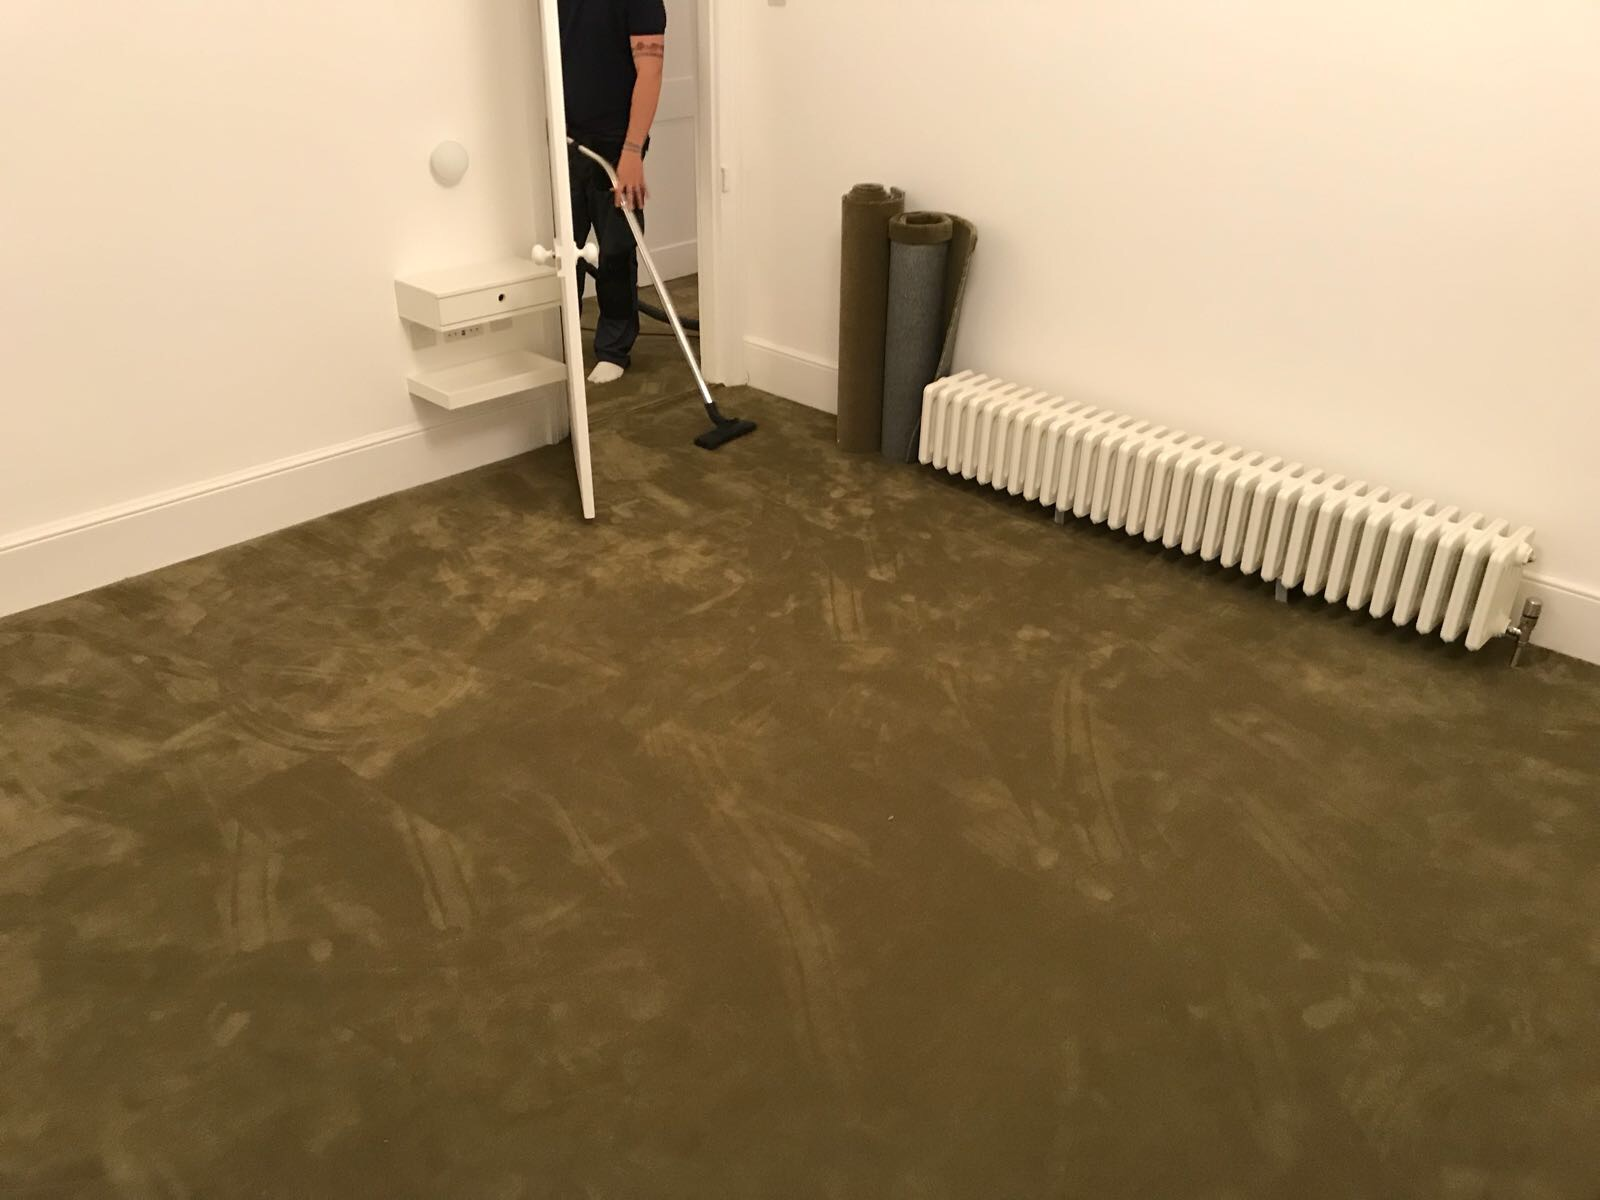 Rols Wool Carpets Castor Plus 322 Olive Green in Borough 2